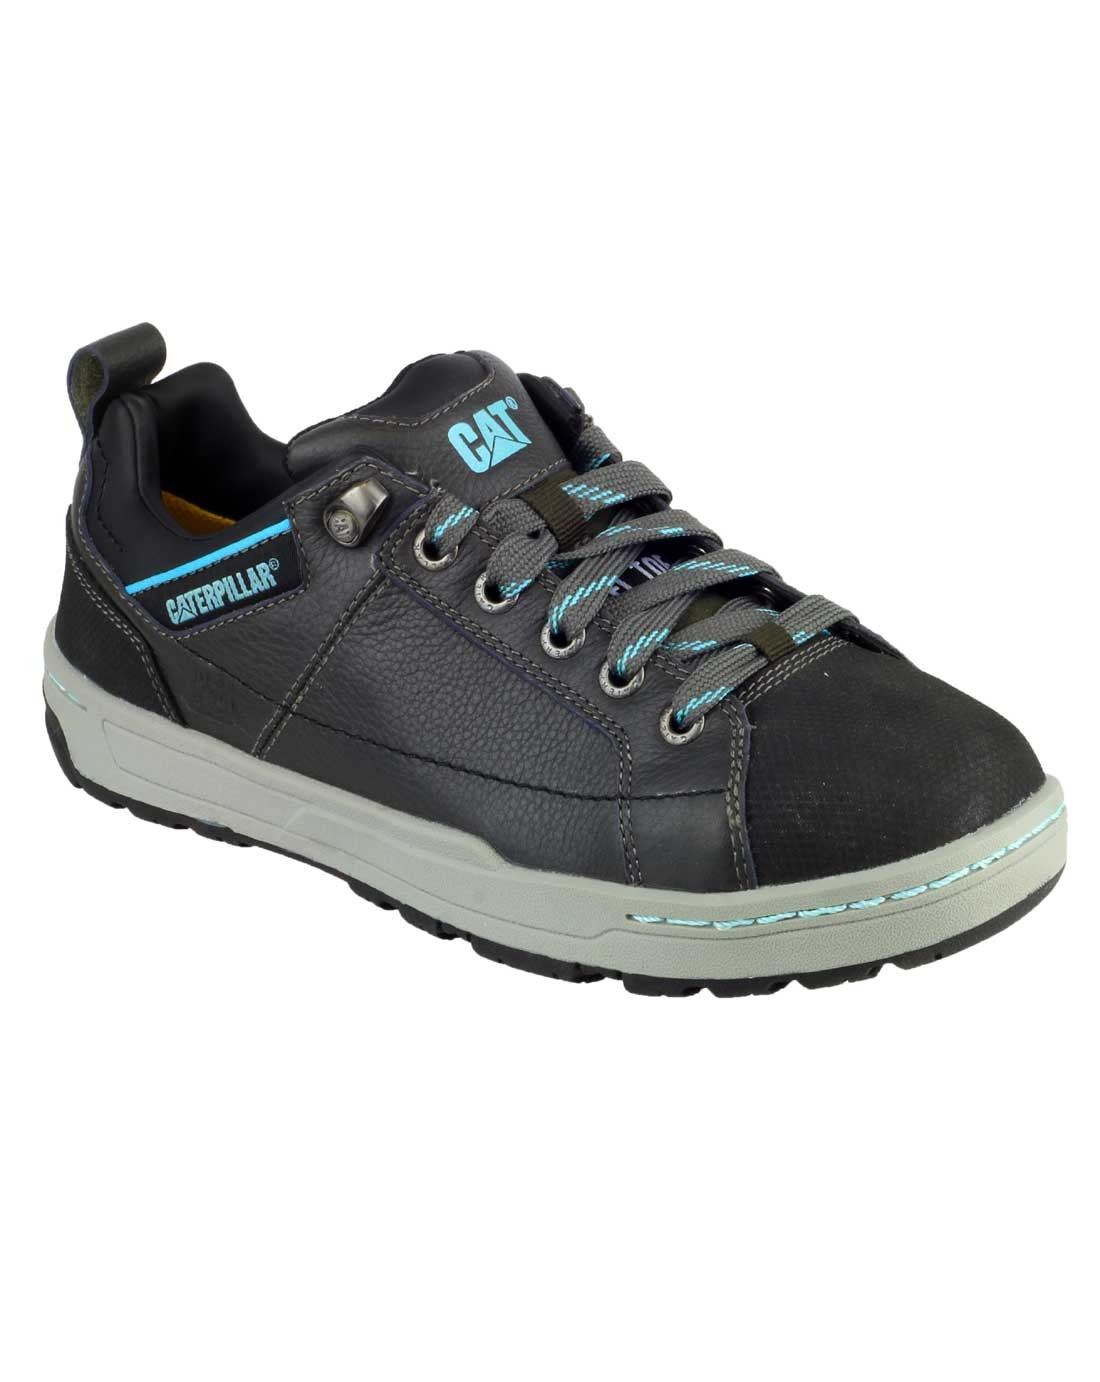 Caterpillar Brode Low Cut Steel Toe Lace Up Ladies Trainer Work Shoes